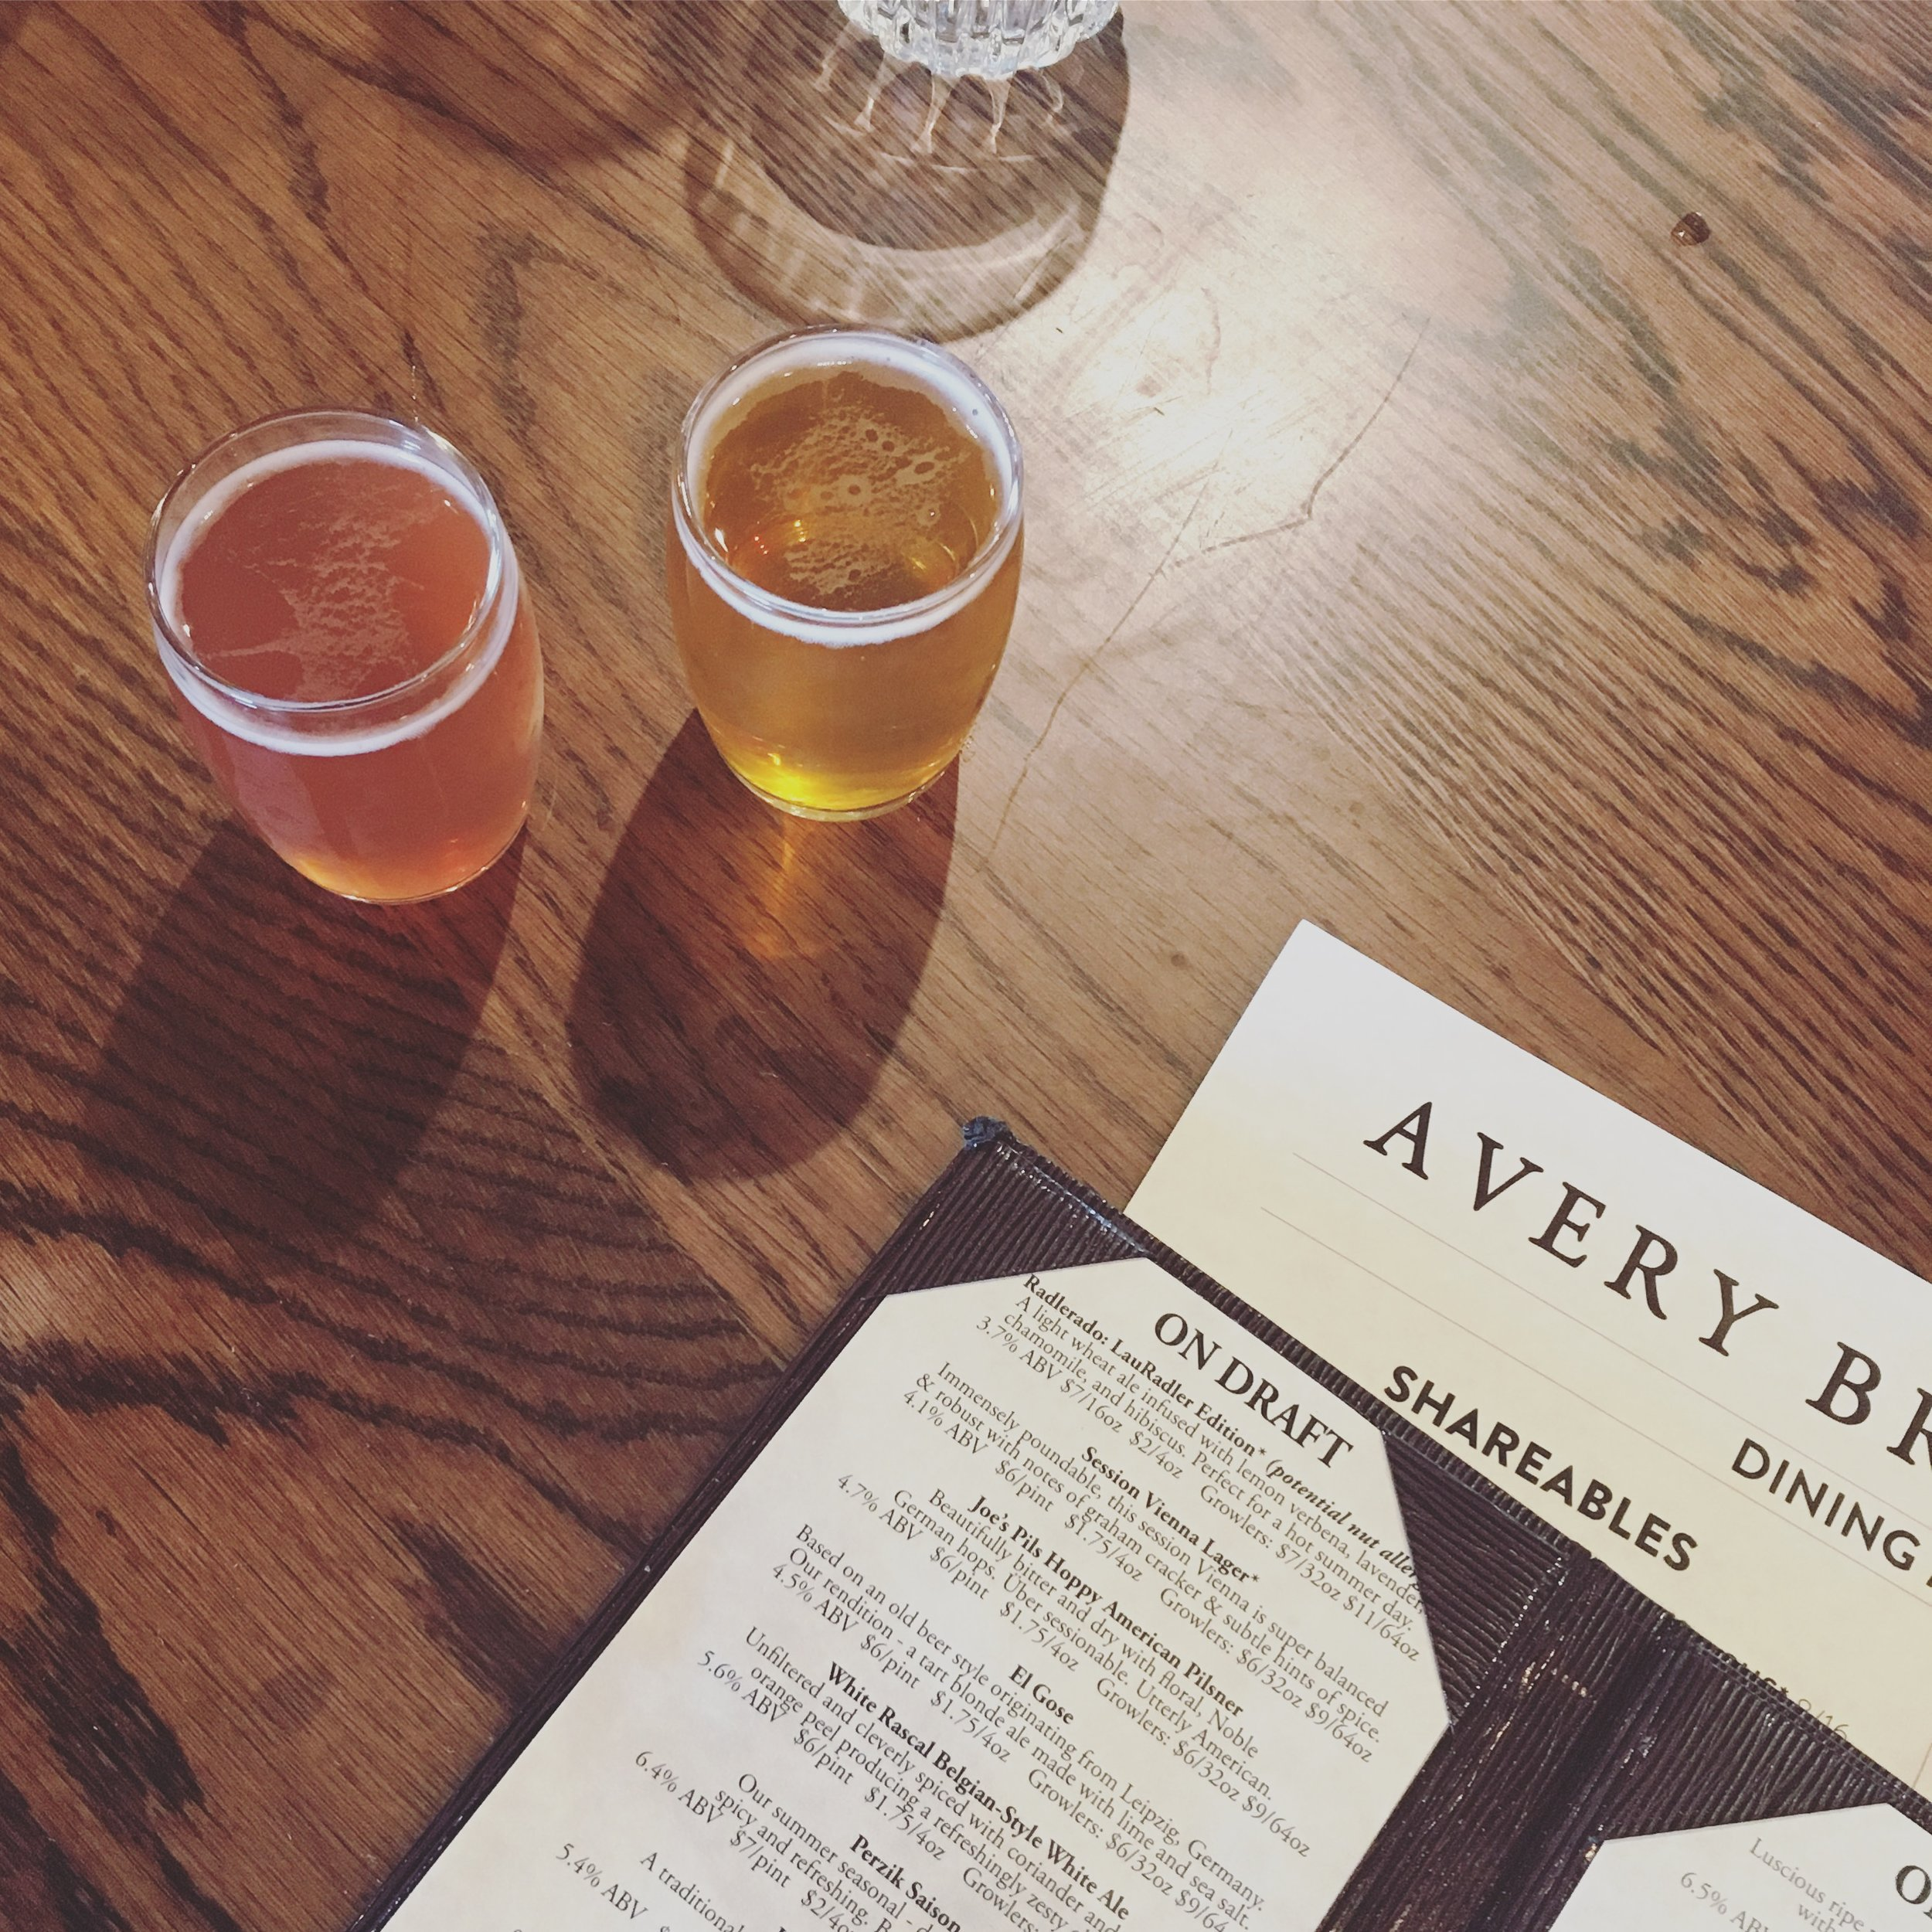 Beers at Avery Brewing